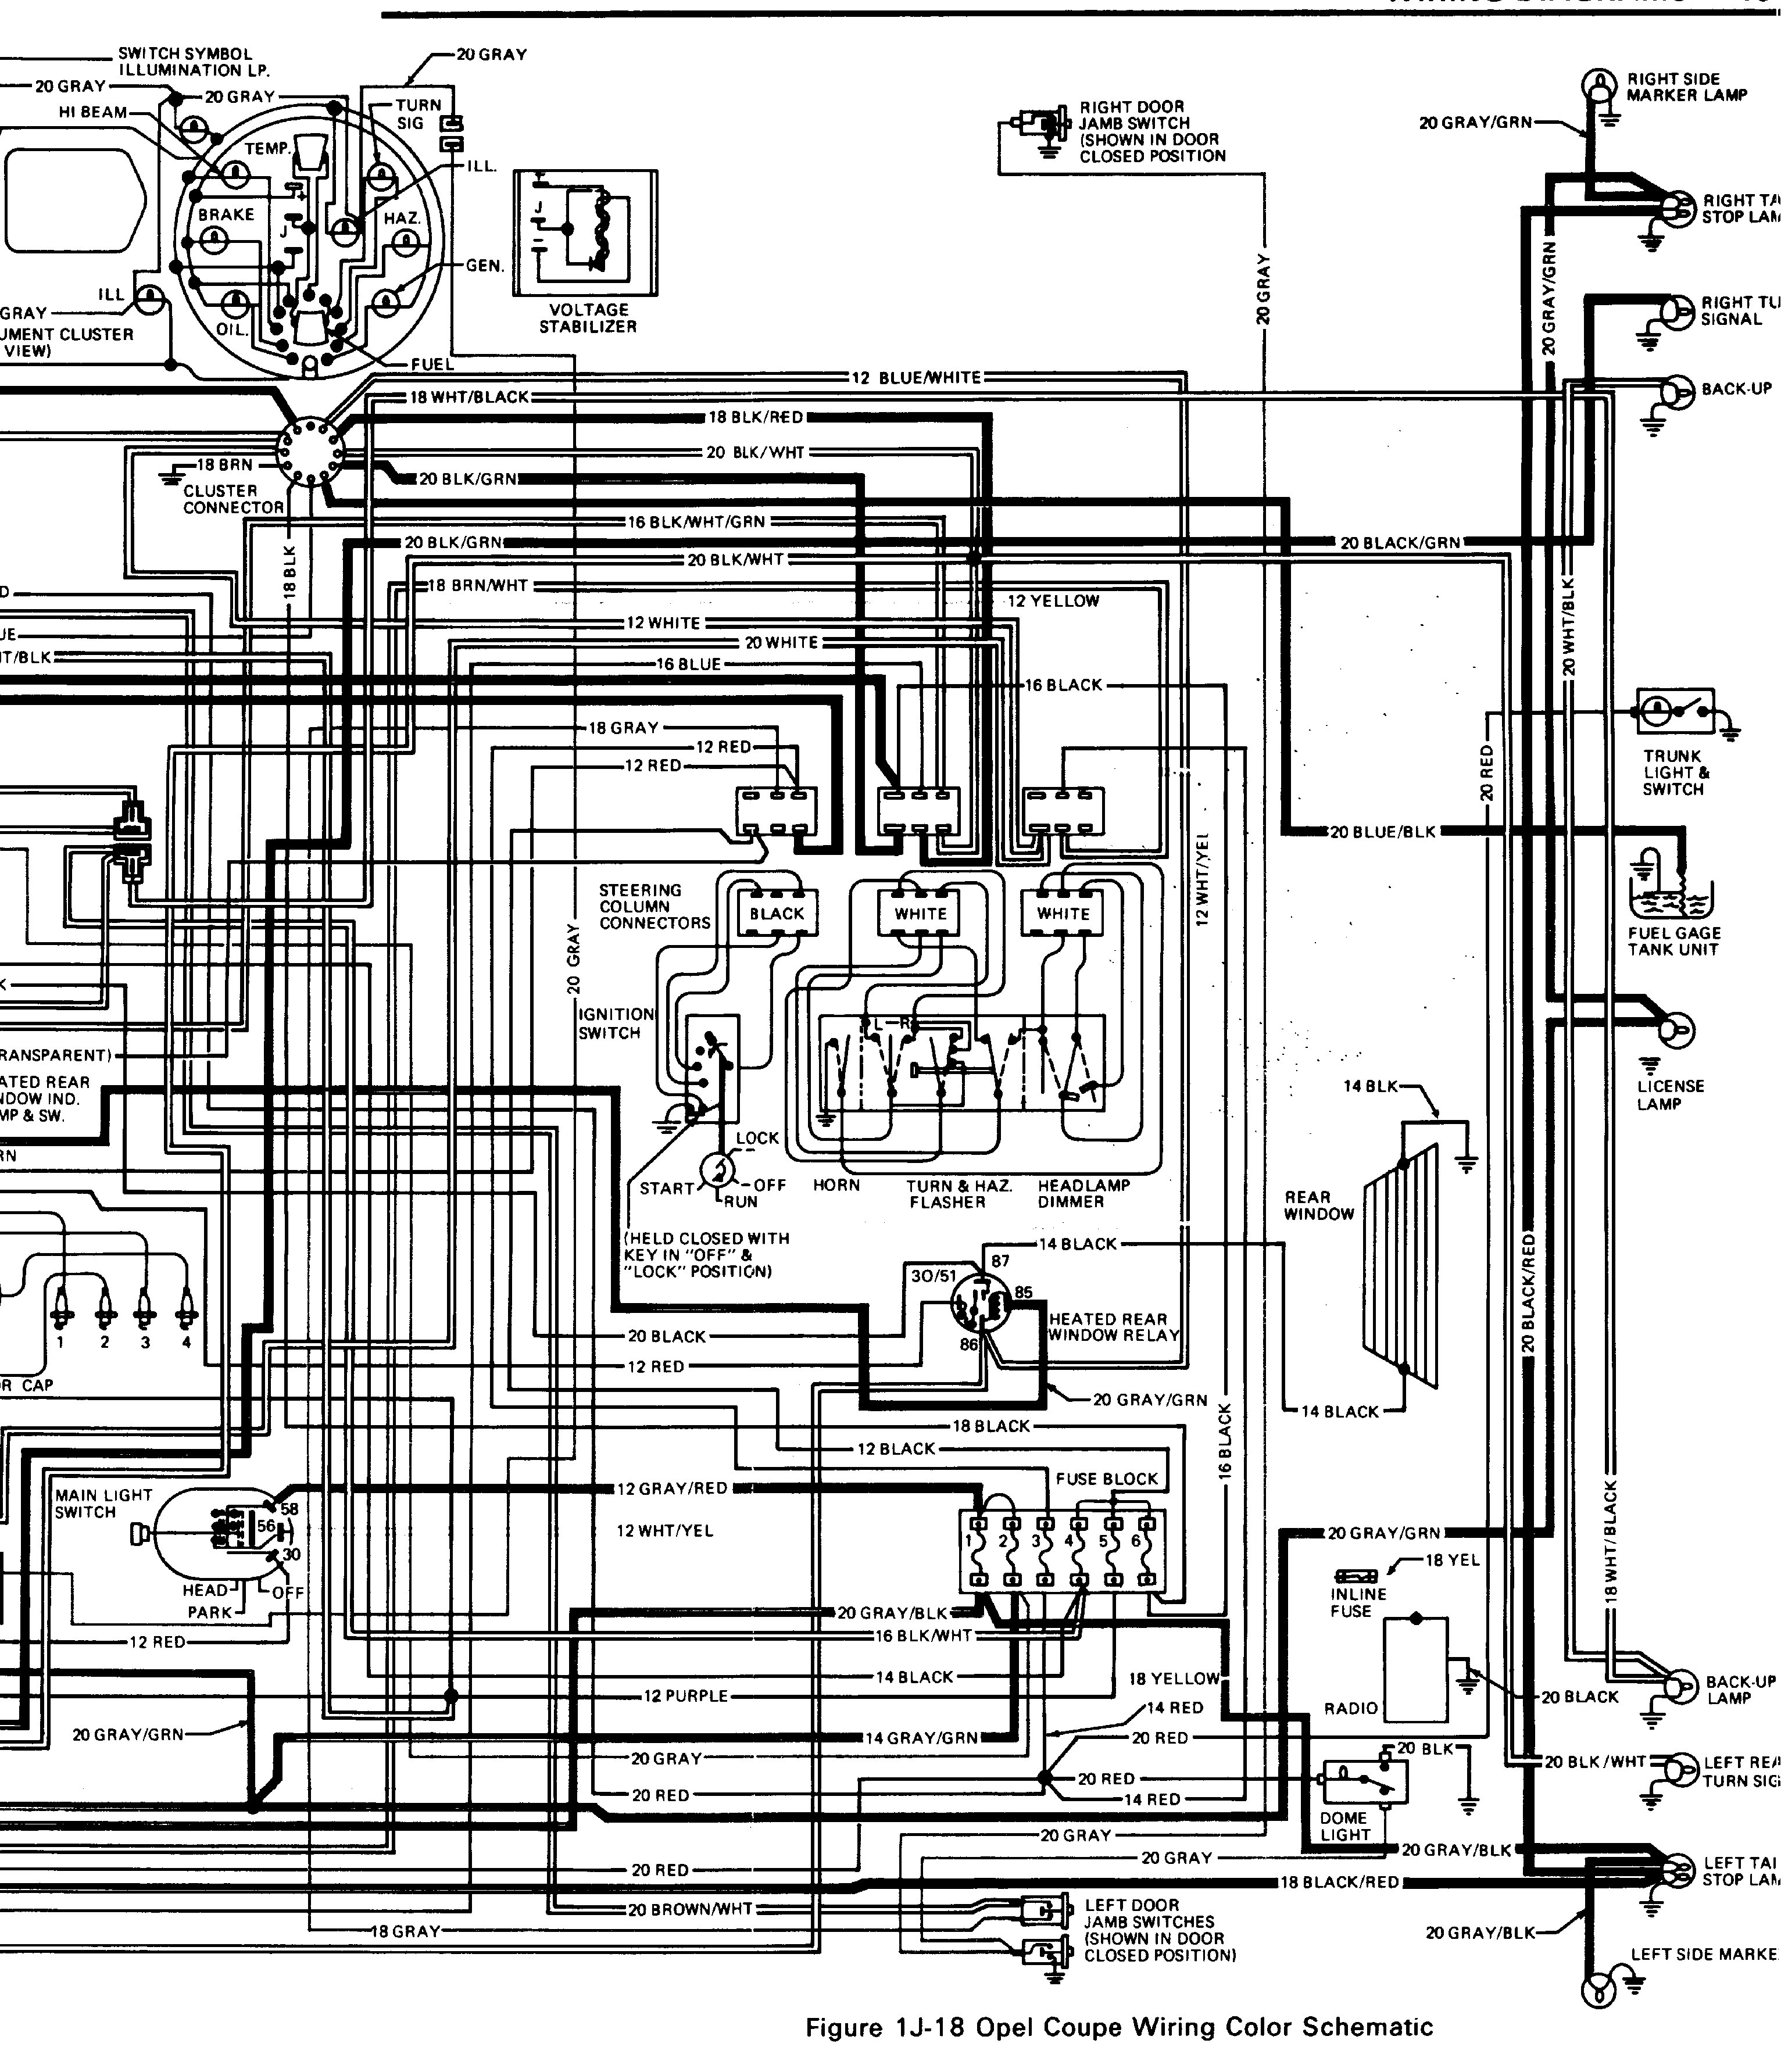 Diagram Saturn Astra Wiring Diagram Full Version Hd Quality Wiring Diagram Sexdiagramx21 Pergotende Roma It